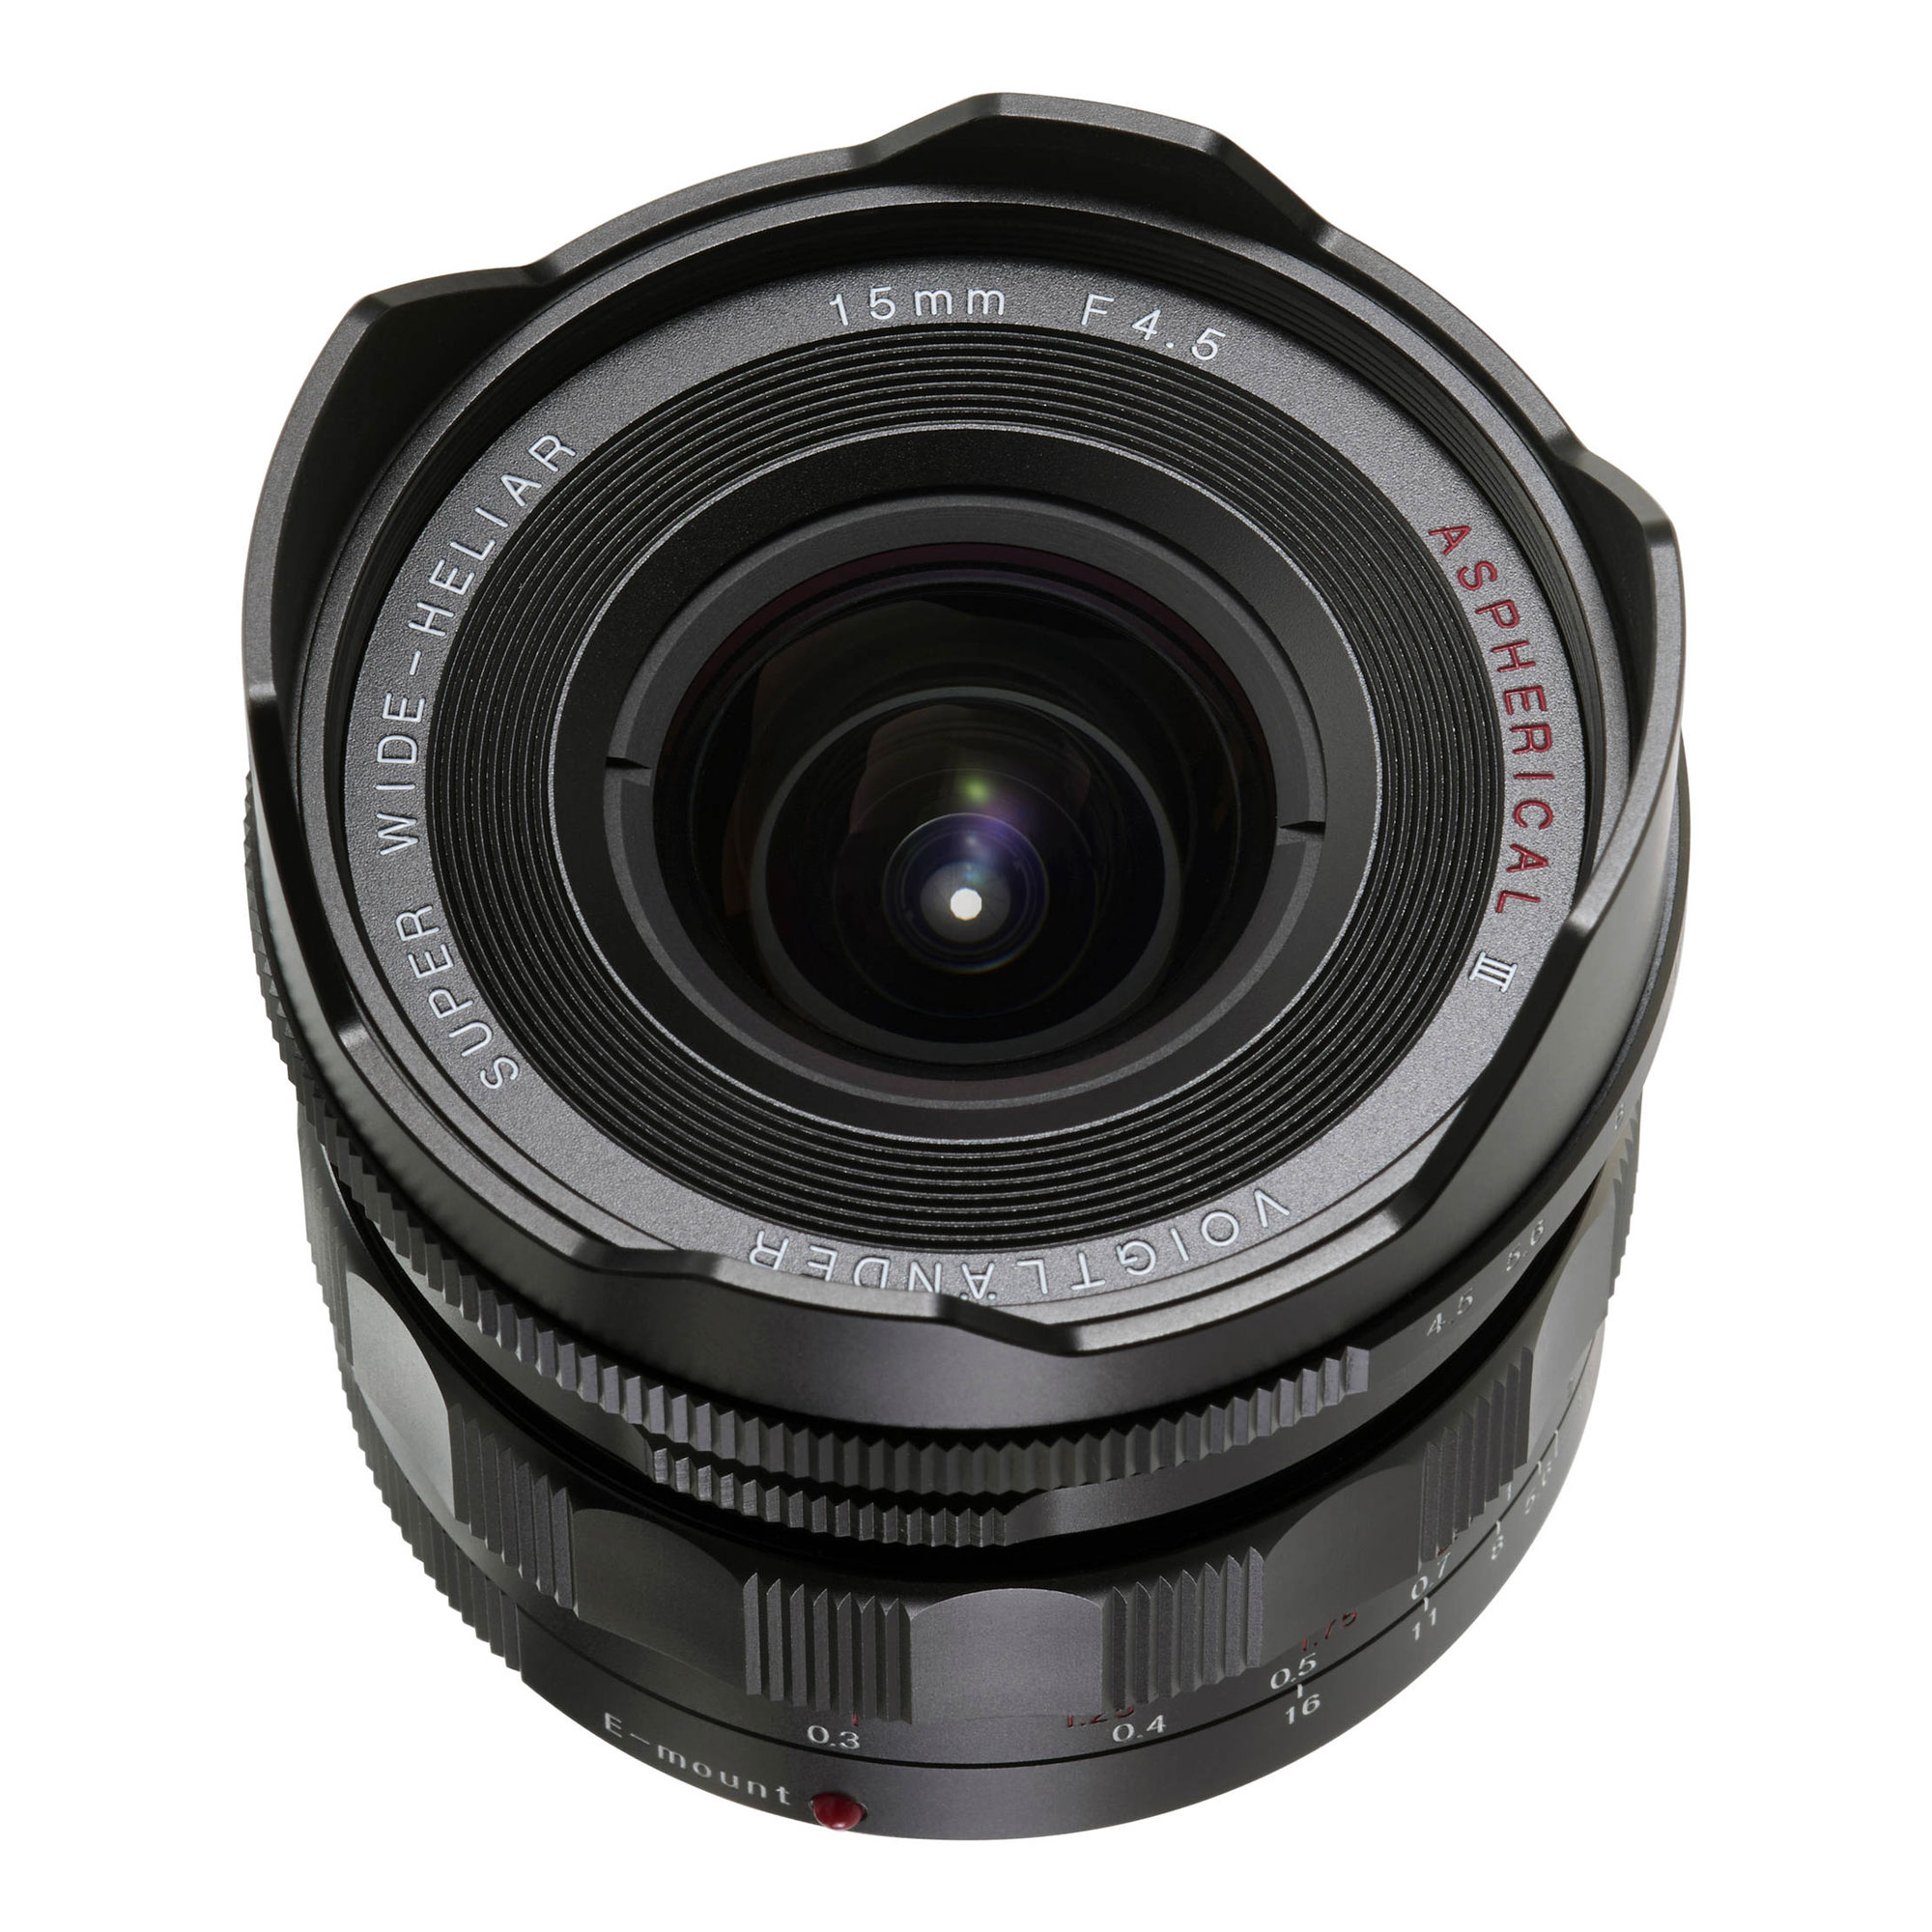 Super Wide-Heliar 15mm f/4.5 Aspherical III Lens for Sony E